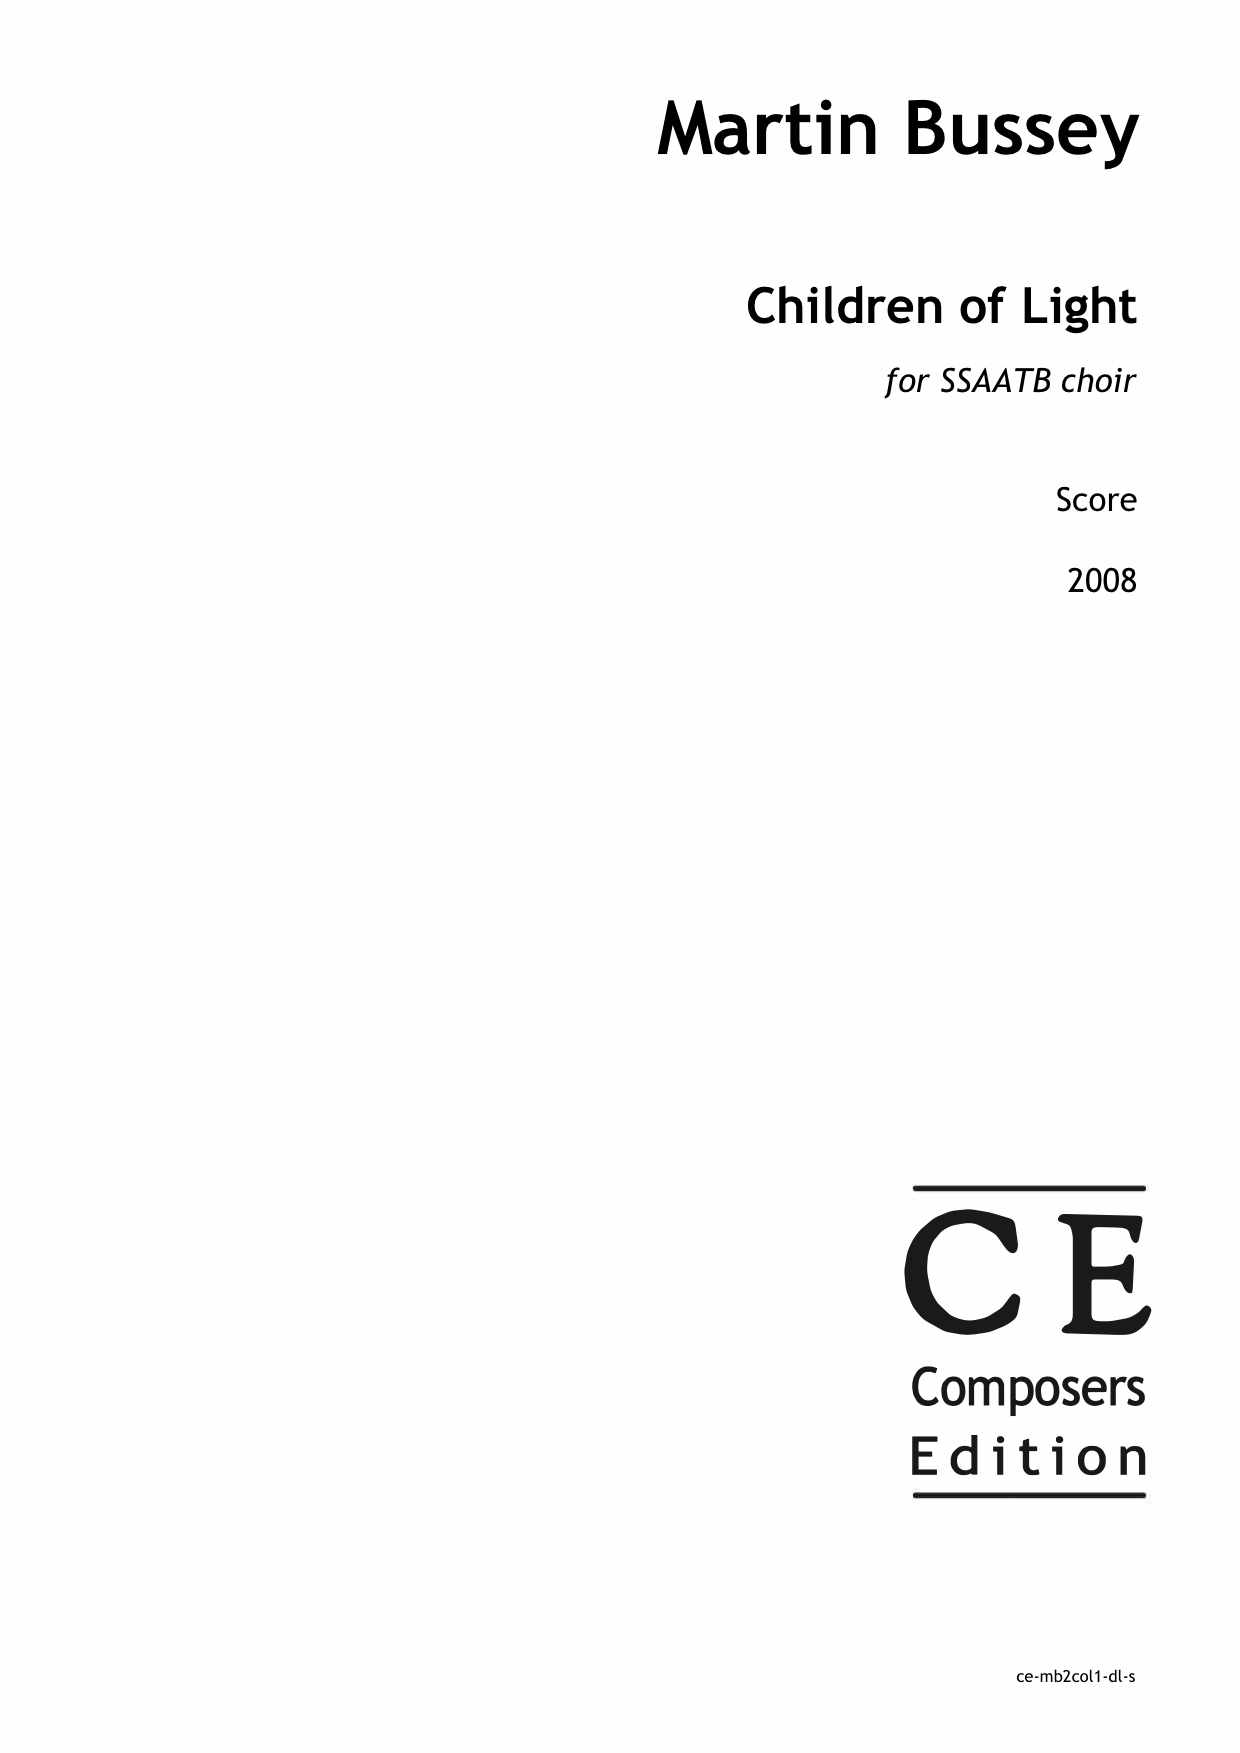 Martin Bussey: Children of Light for SSAATB choir